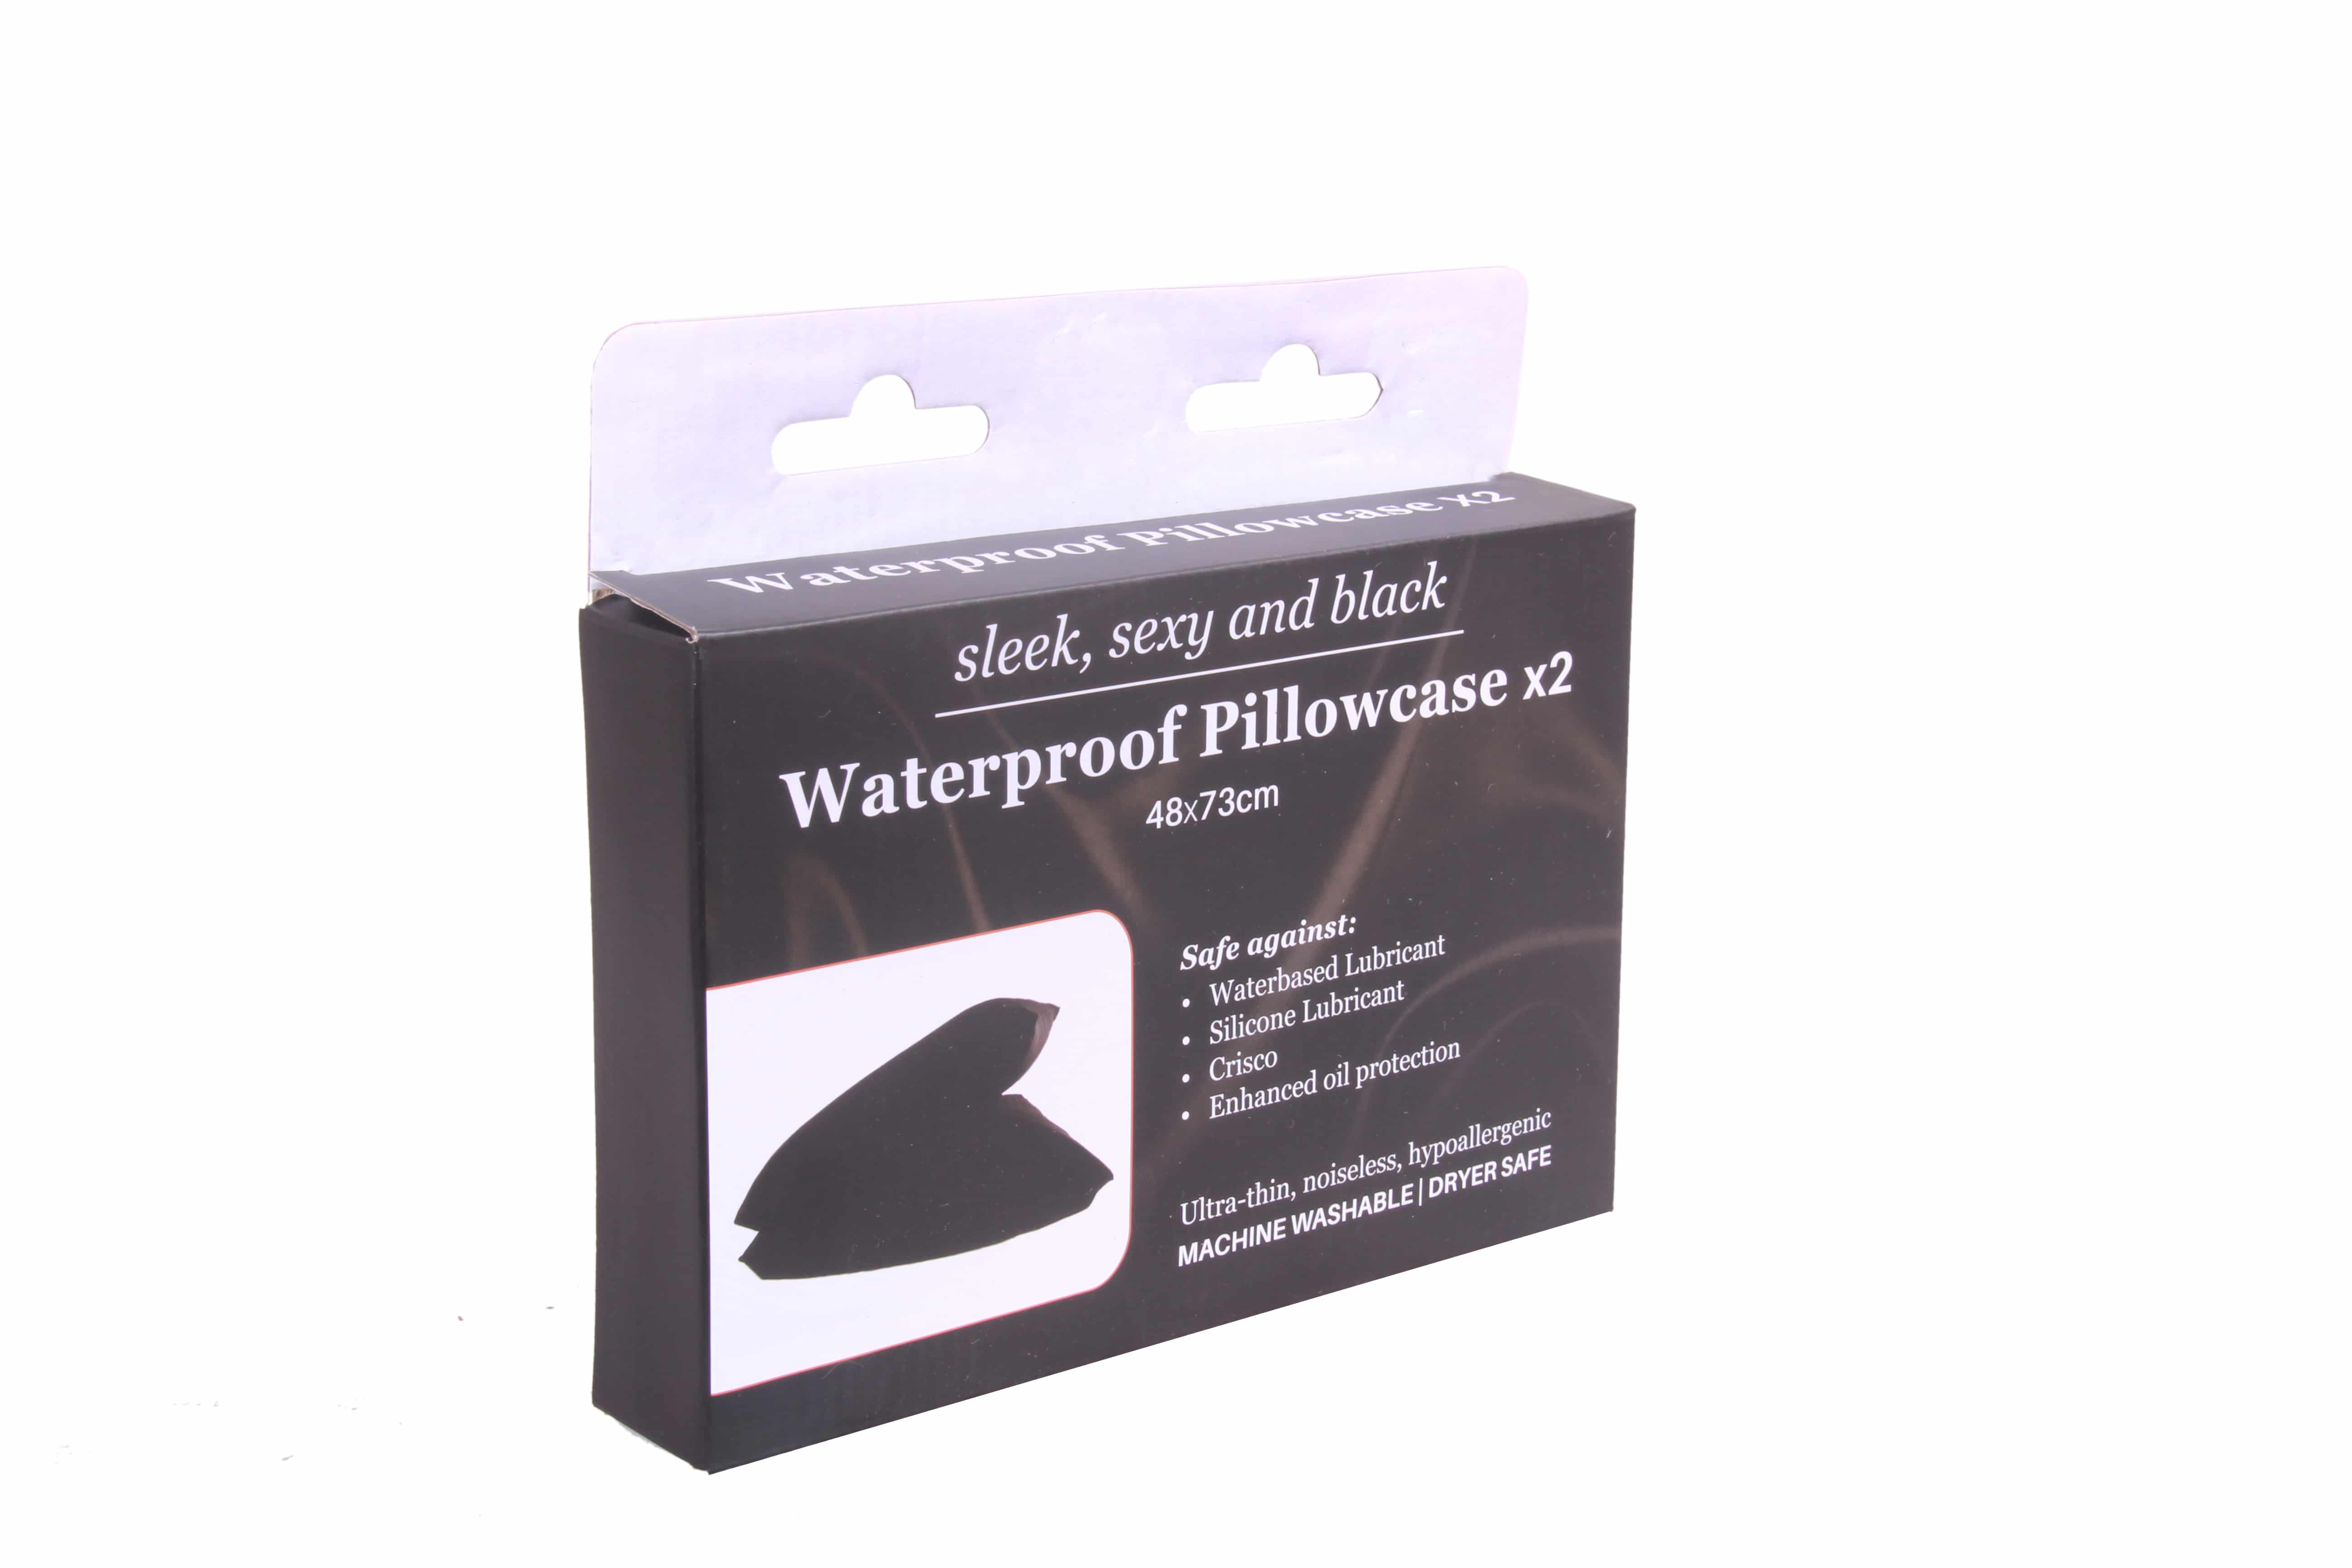 Eroticgel Pillowcase Waterproof Front Box Angle